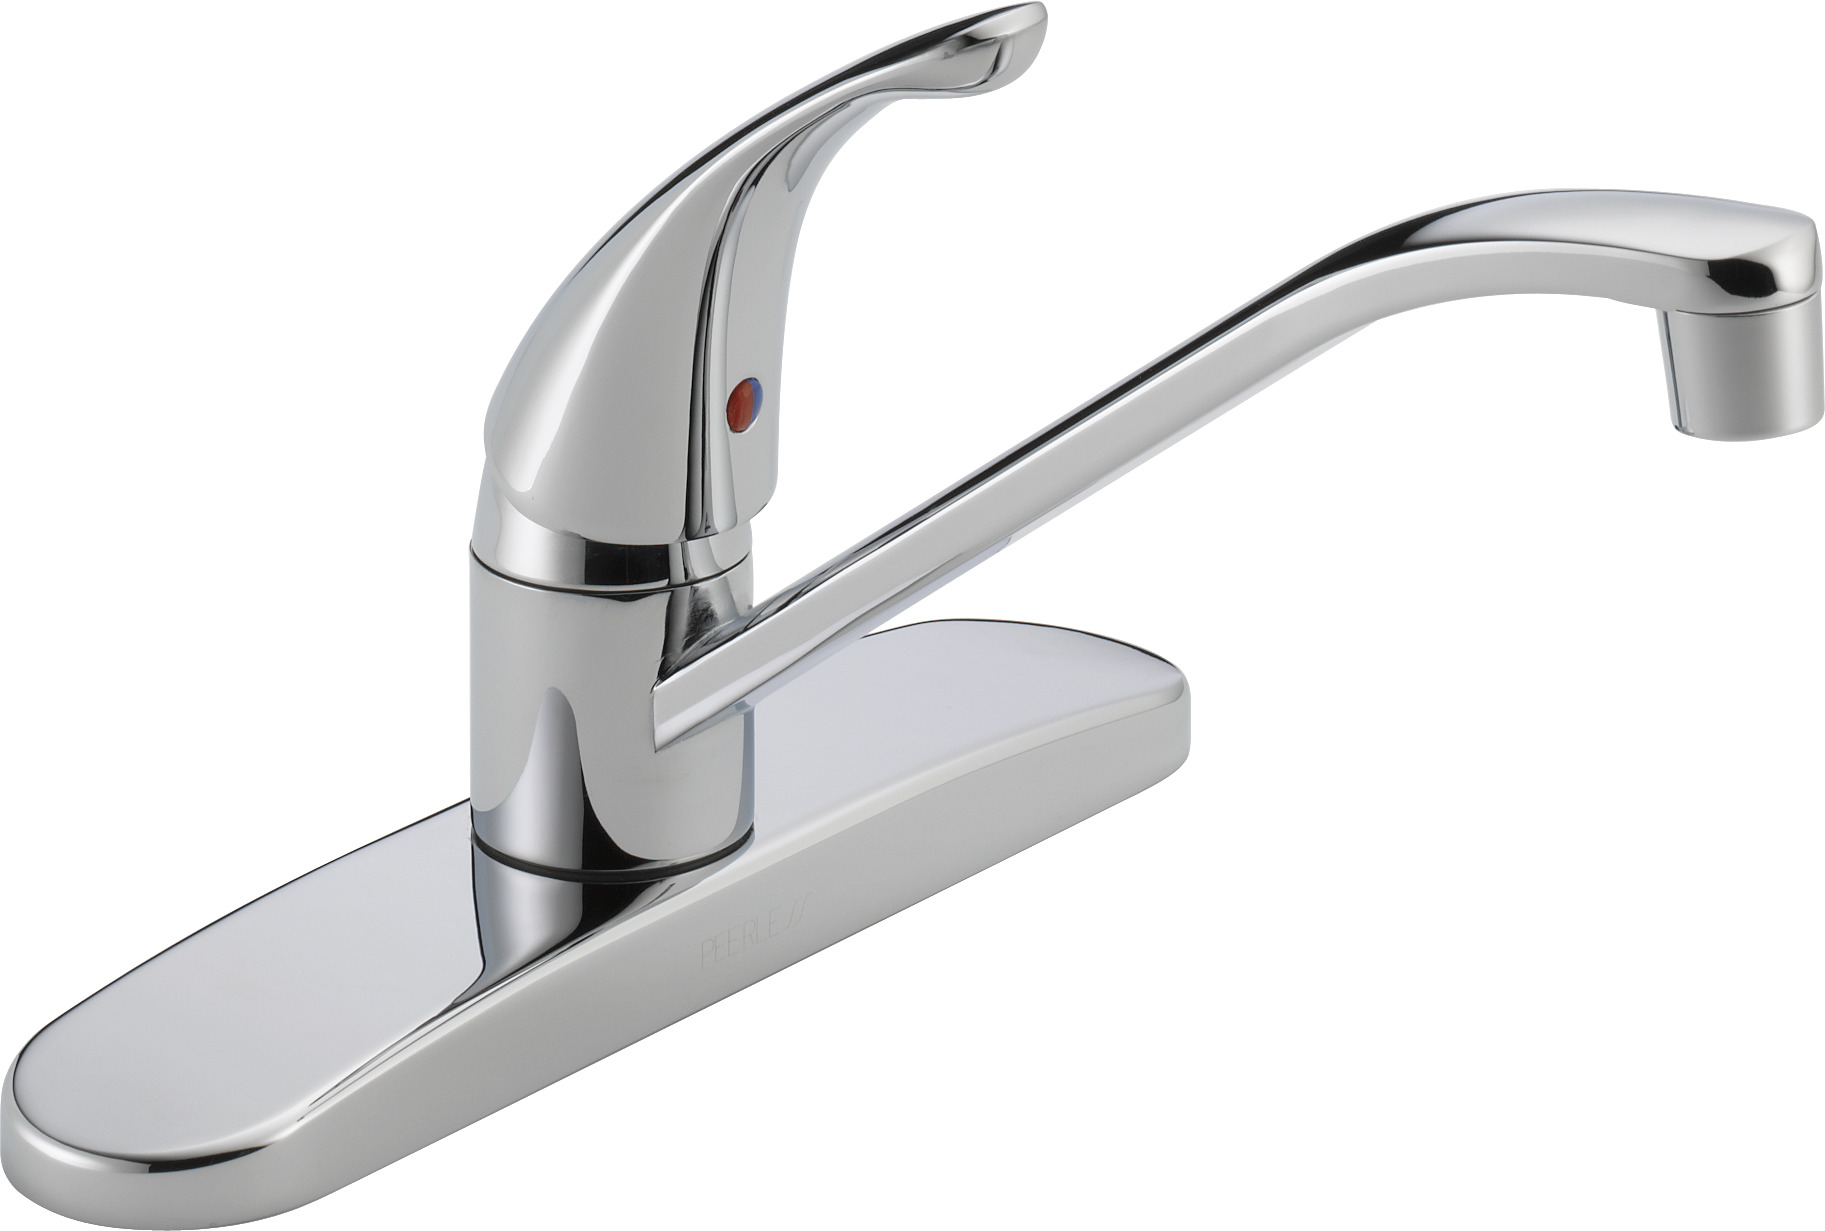 Elegant Peerless Single Handle Kitchen Faucet With Single Lever Control, Chrome